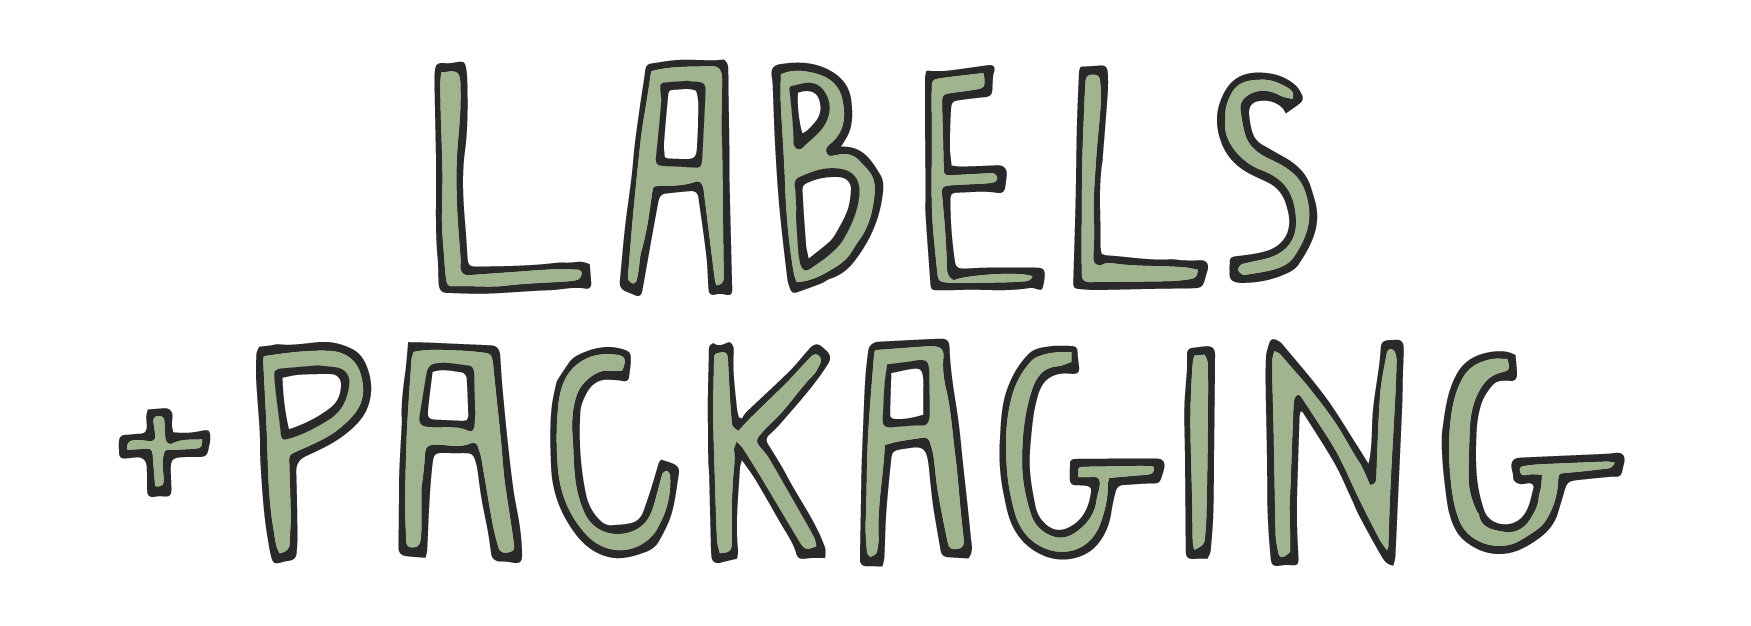 LABELS + PACKAGING.png